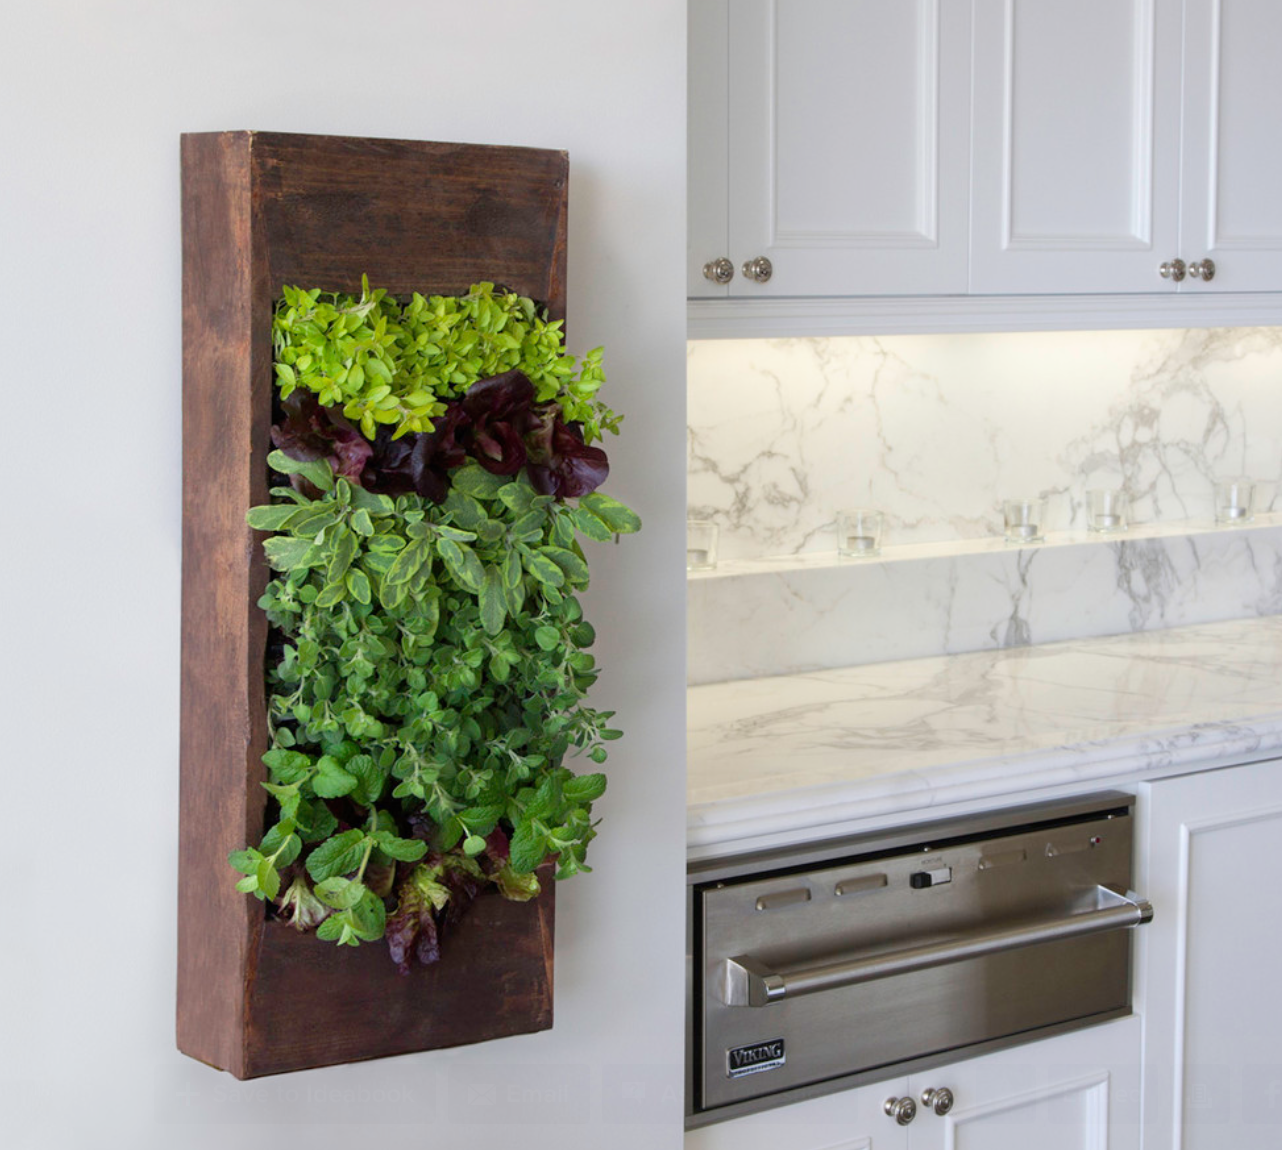 Modern indoor Salad Garden in Kitchen Balcony